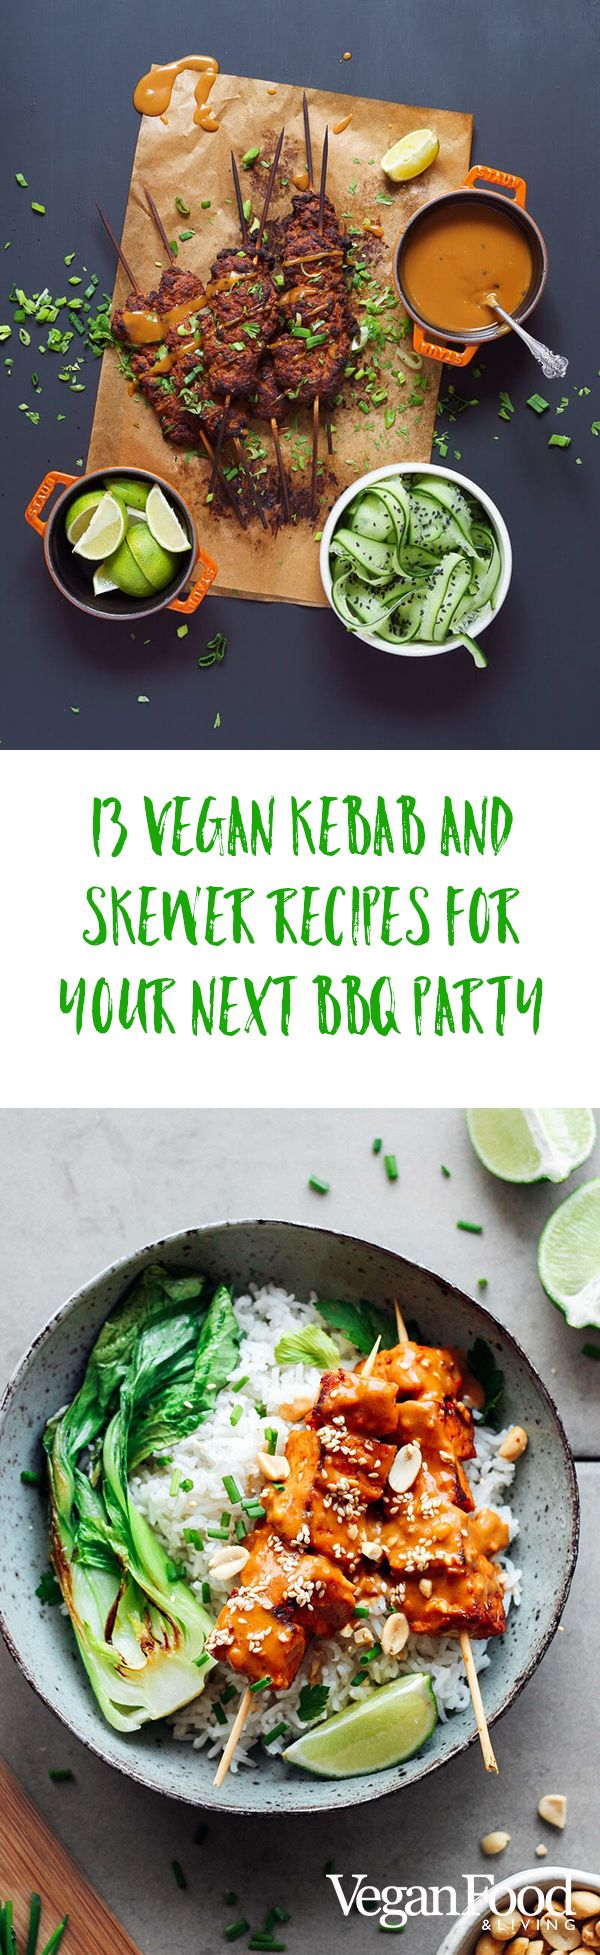 13 vegan kebab and skewer recipes for your next BBQ party